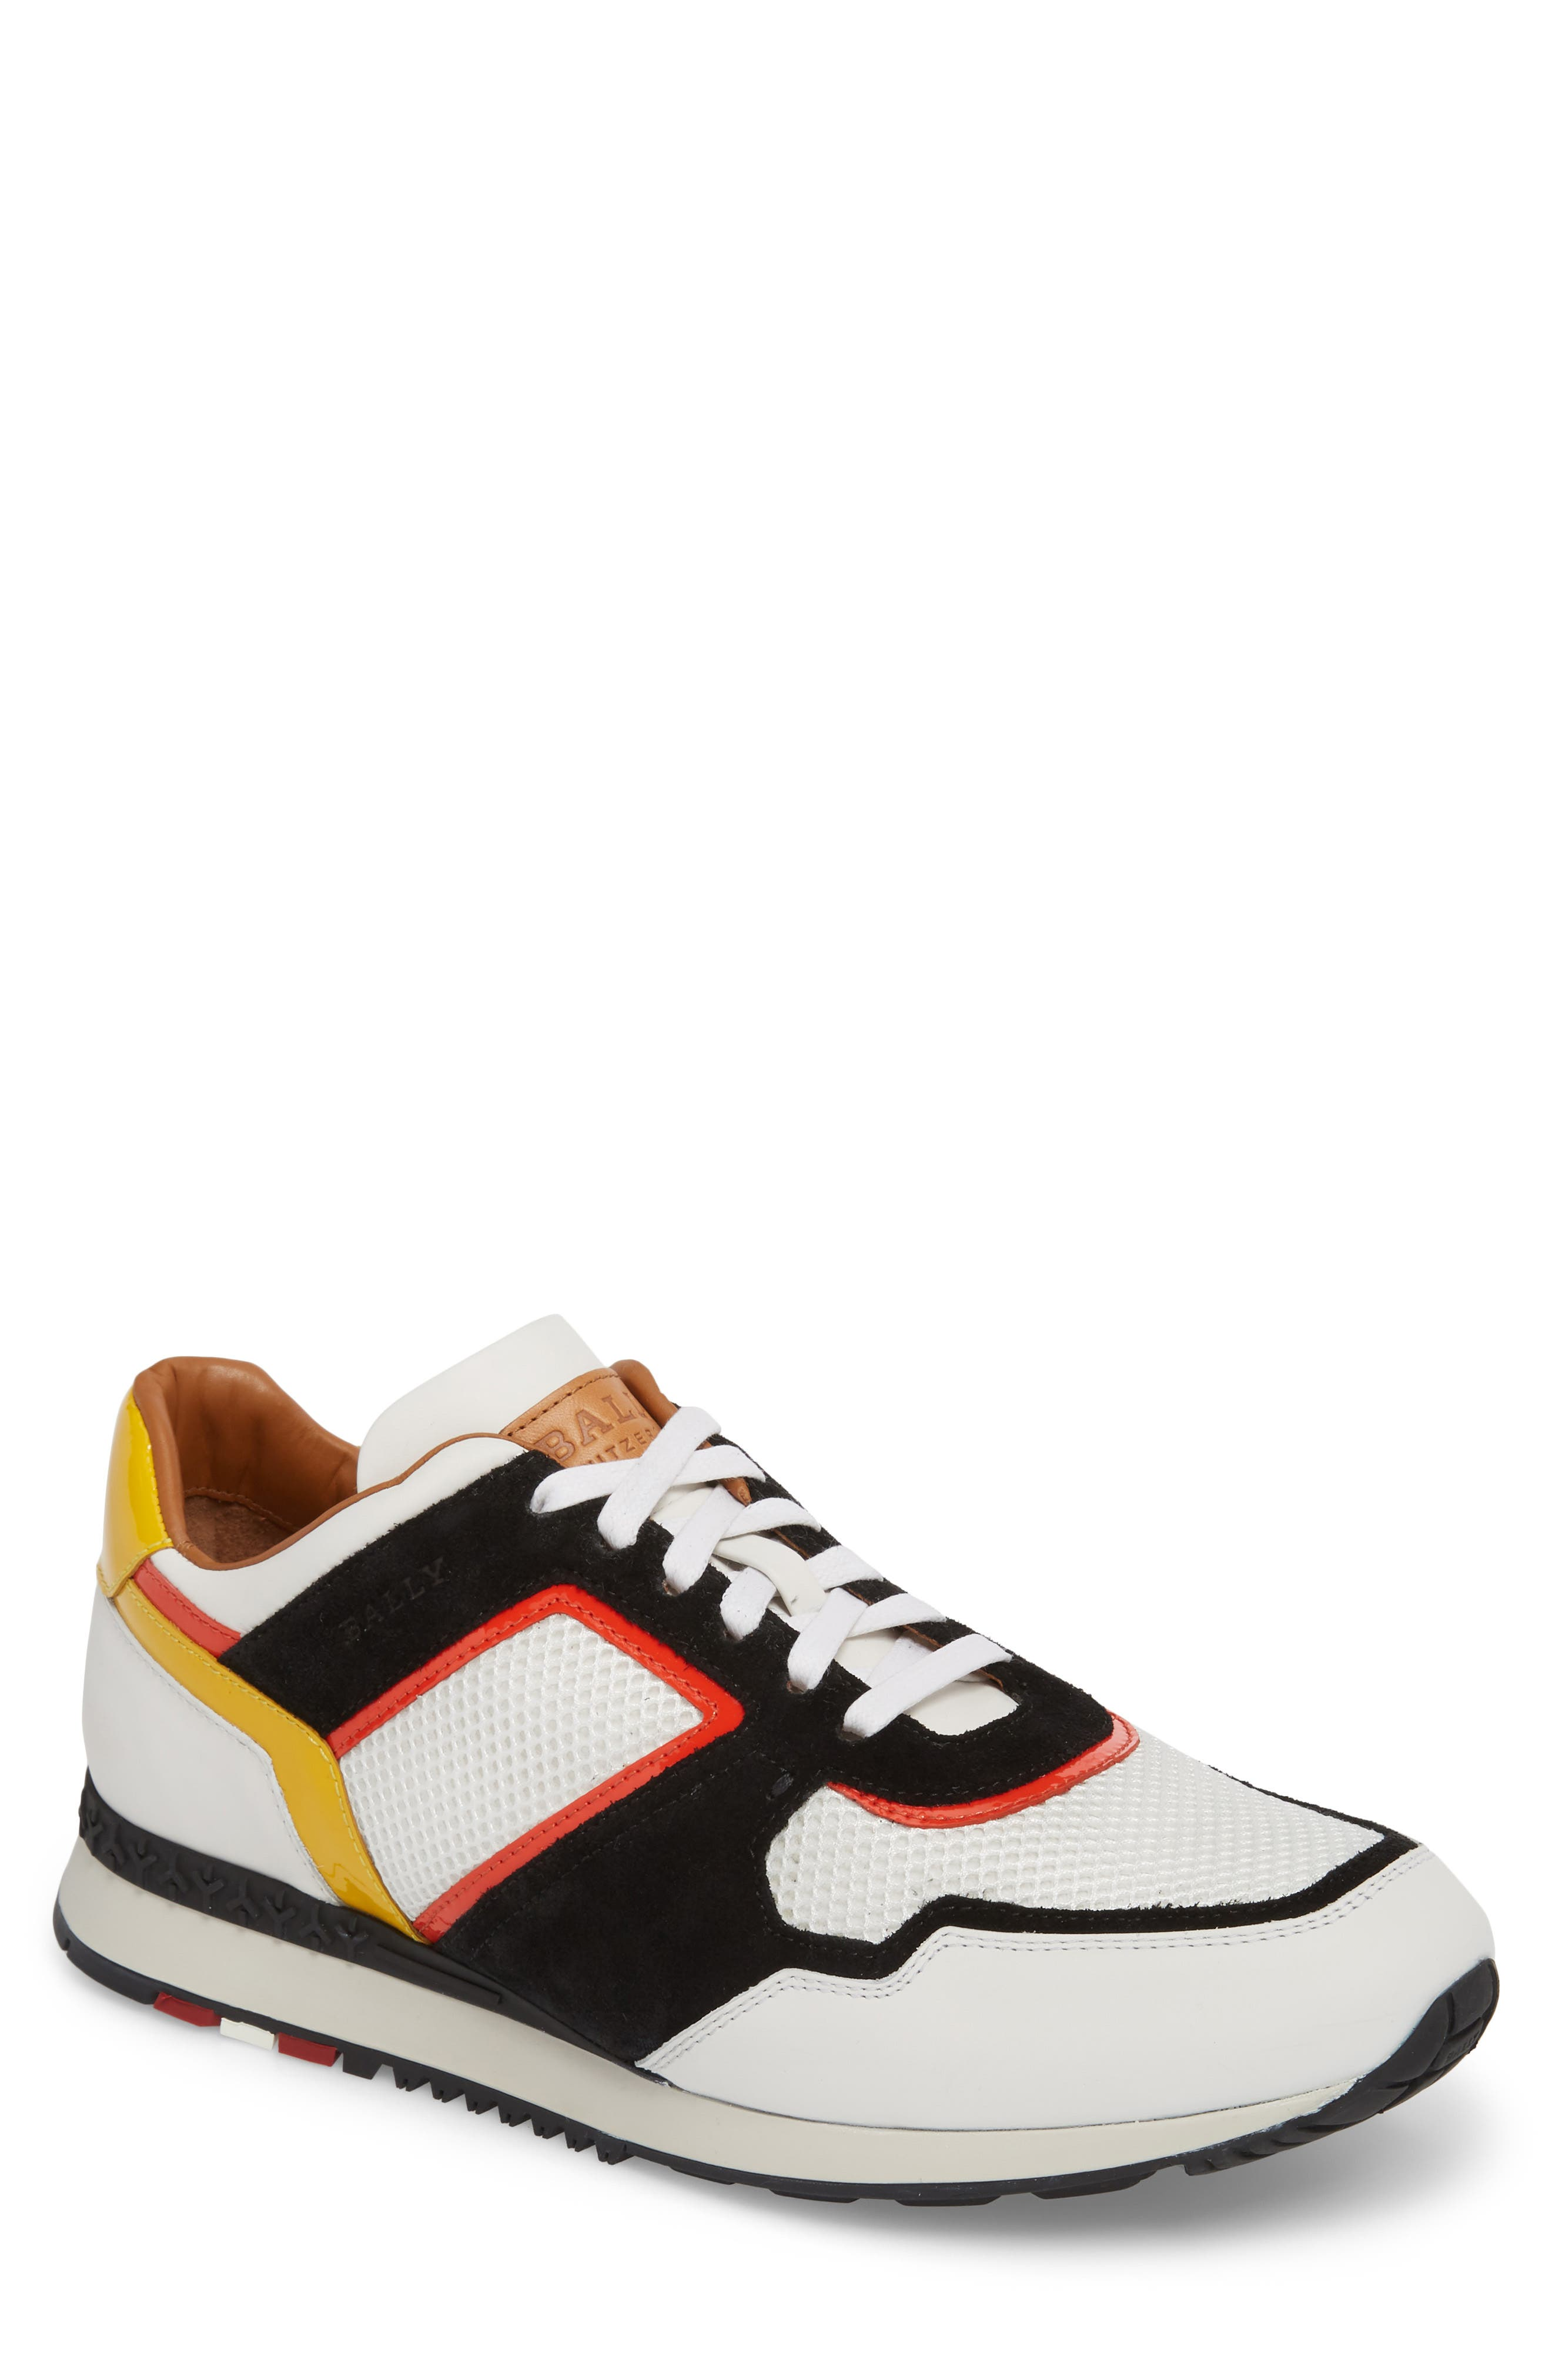 Astreo Low Top Sneaker,                         Main,                         color, White